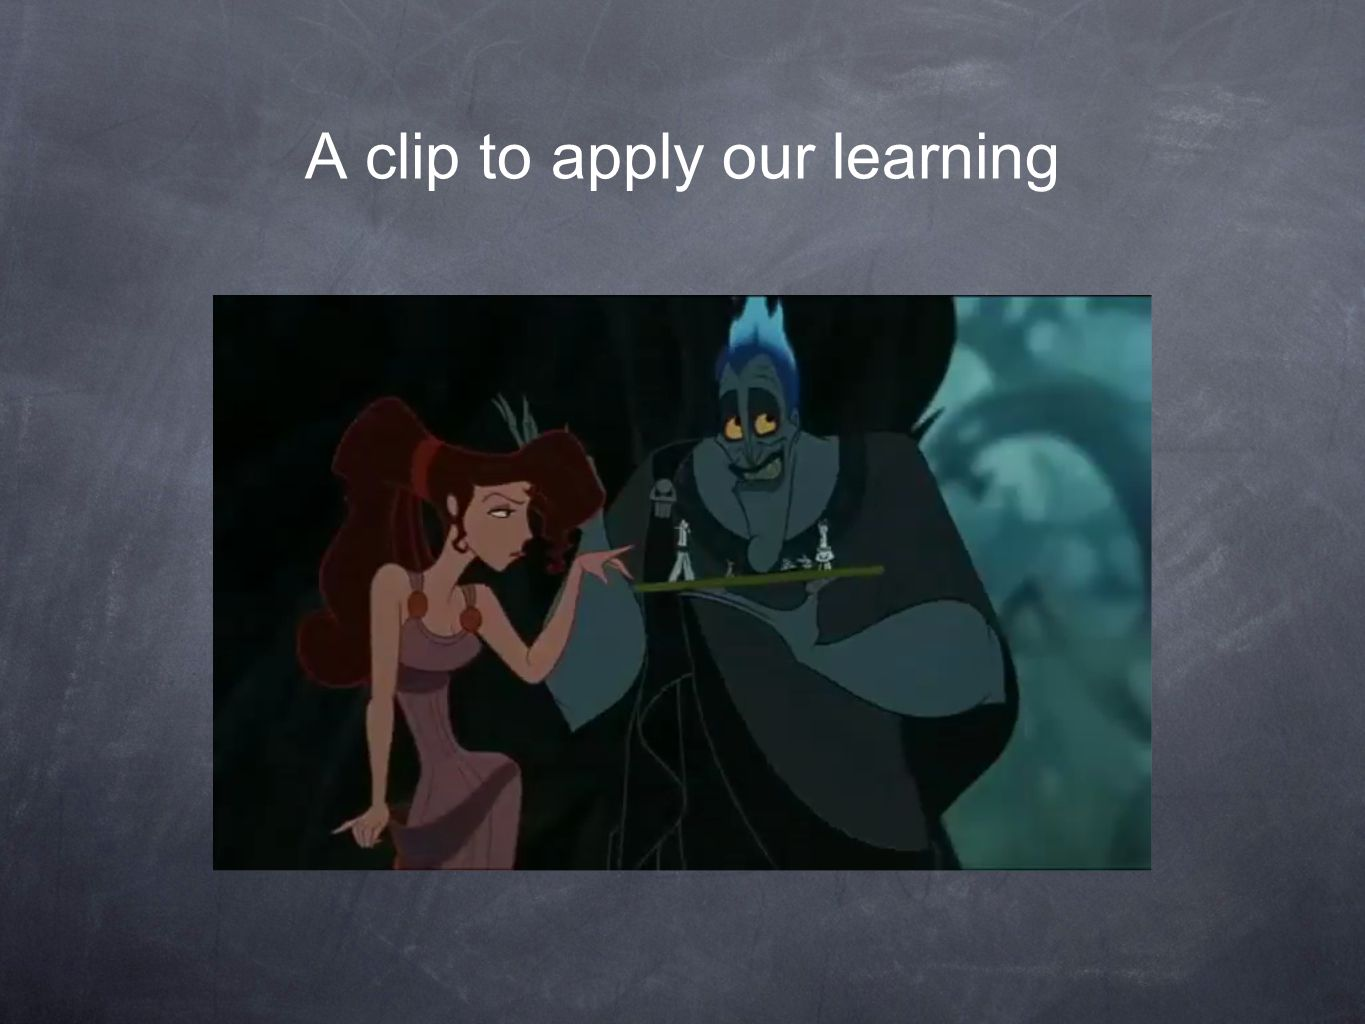 A clip to apply our learning